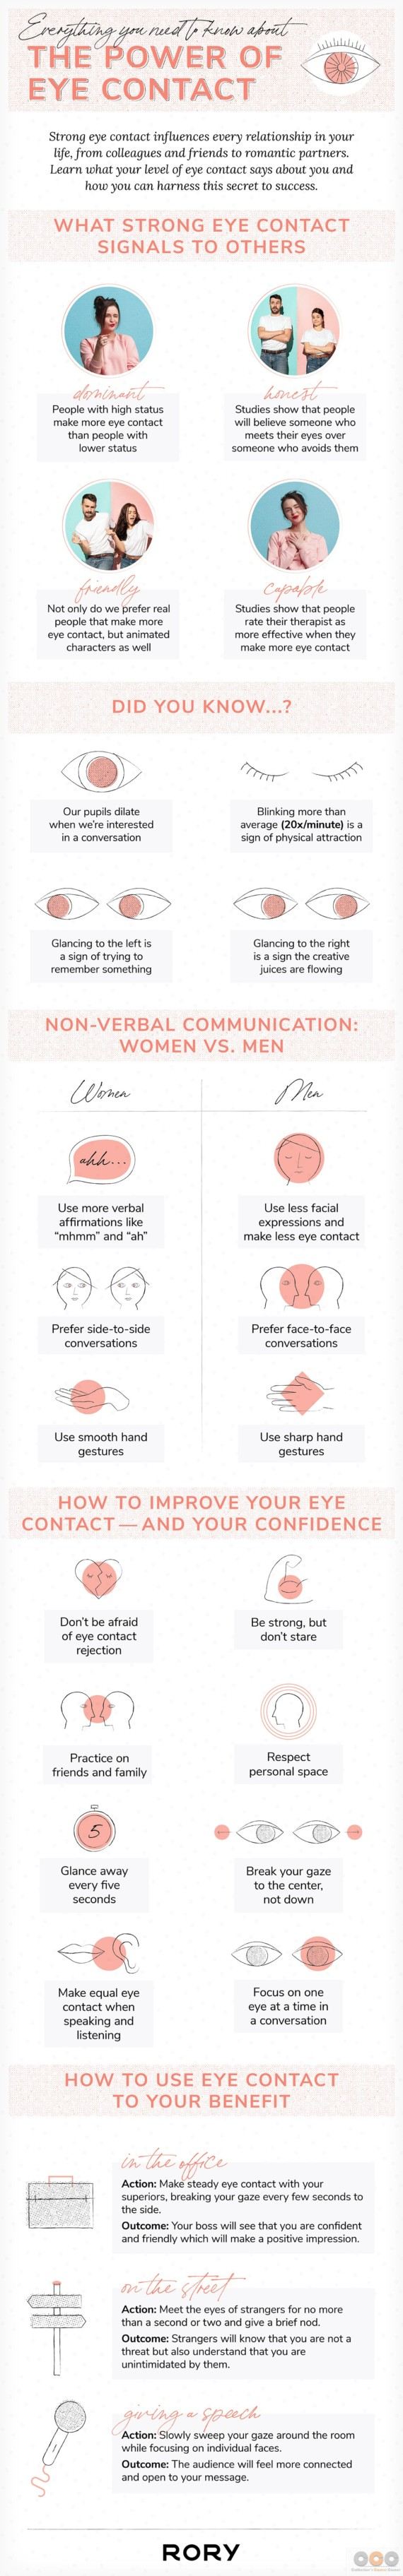 Harnessing the Power of Eye Contact